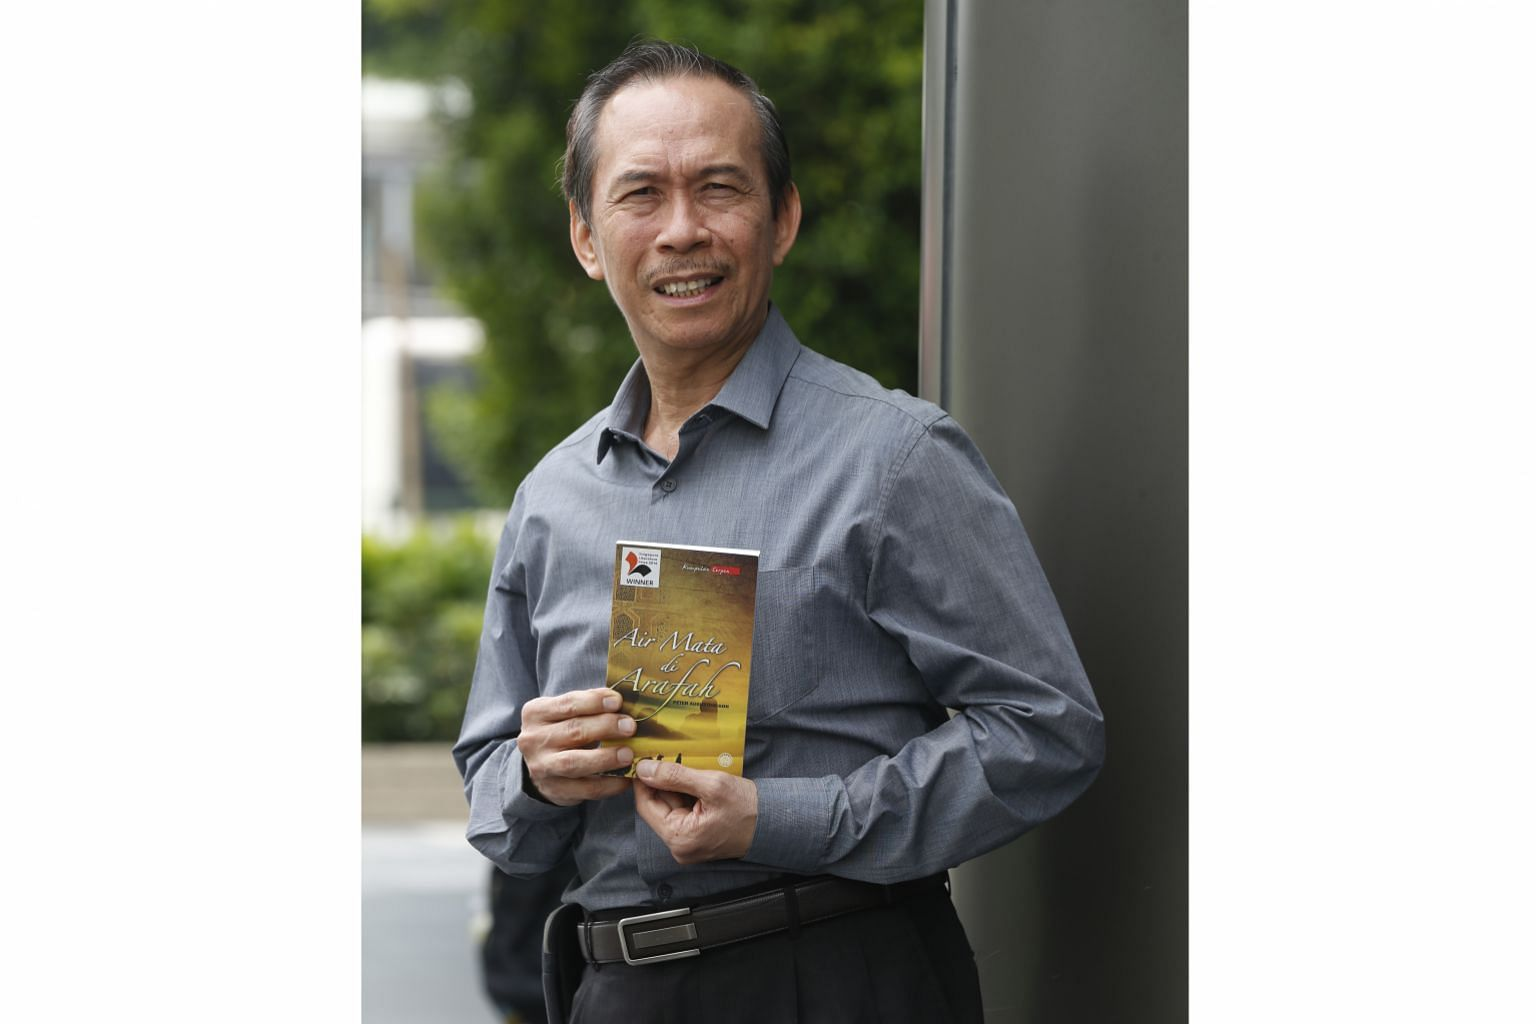 Author Peter Augustine Goh won the Singapore Literature Prize in 2016 for his short story collection Air Mata Di Arafah (Tears In Arafah).